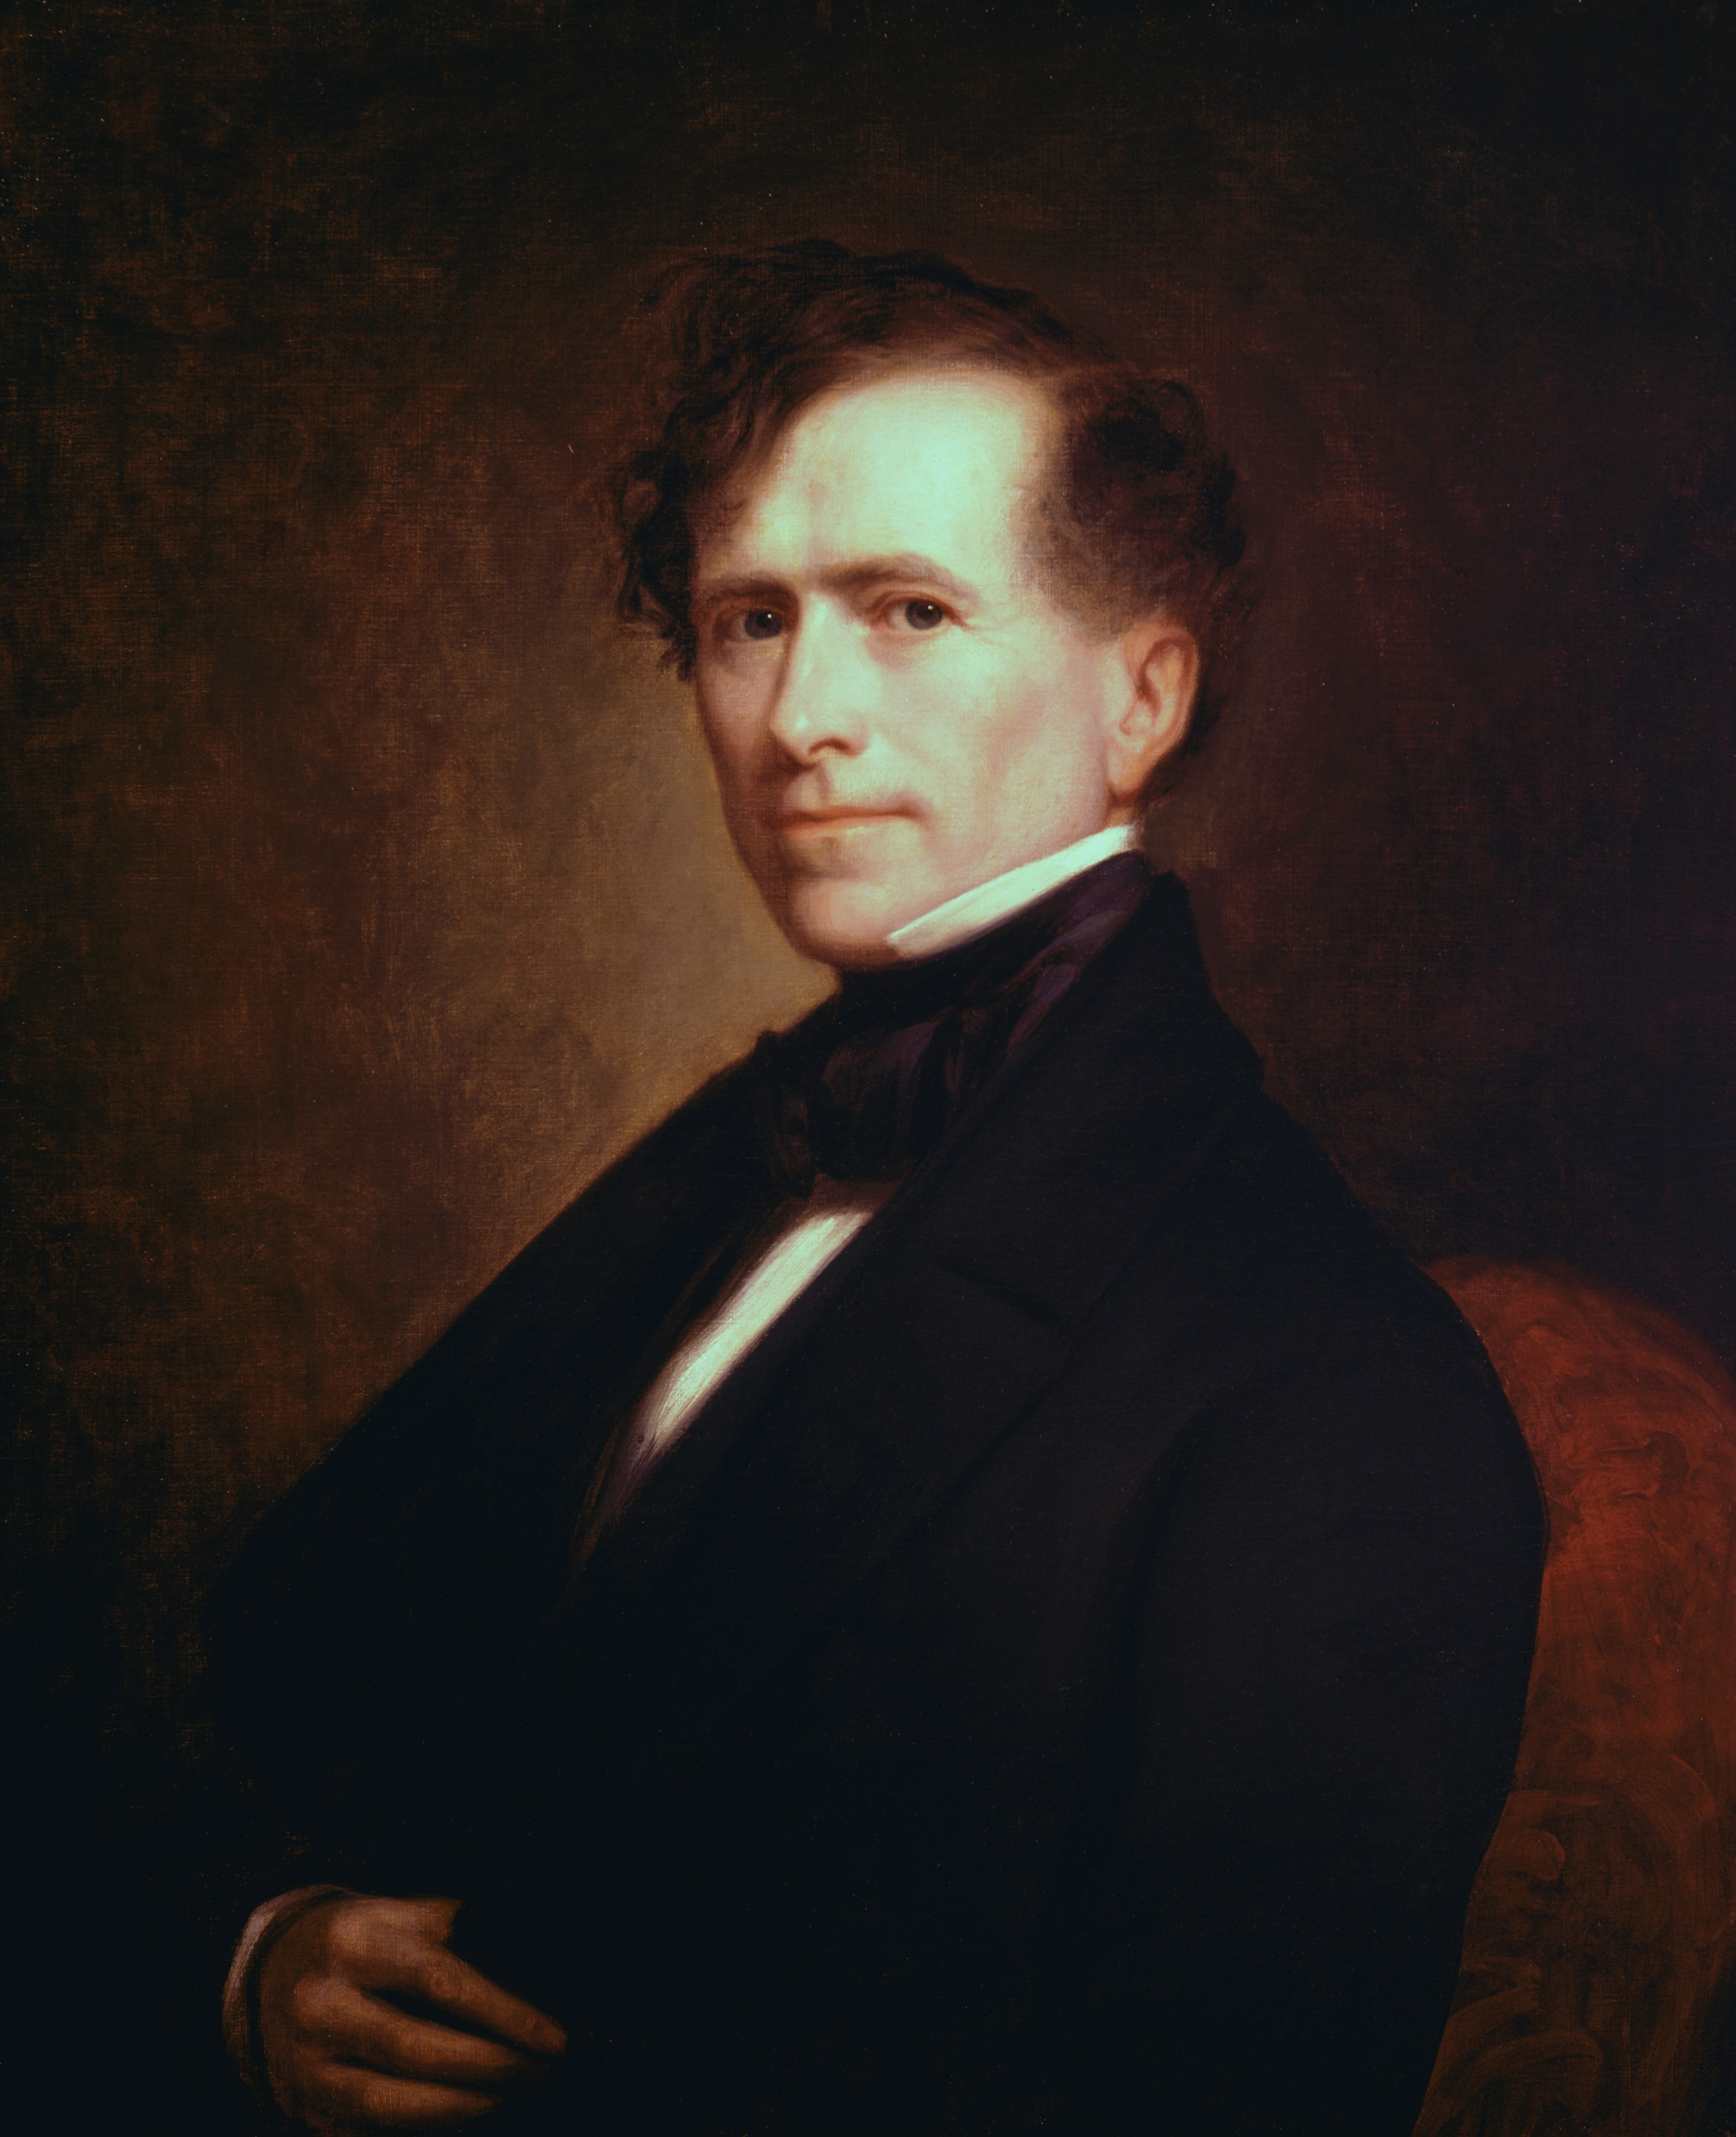 franklin pierce research paper Franklin pierce: martyr for the union [peter wallner] on amazoncom  a favor in  giving a definitive biography of his life and times to study and learn about  so  expect this work to be highly biased in favor of pierce (maybe he was due a.